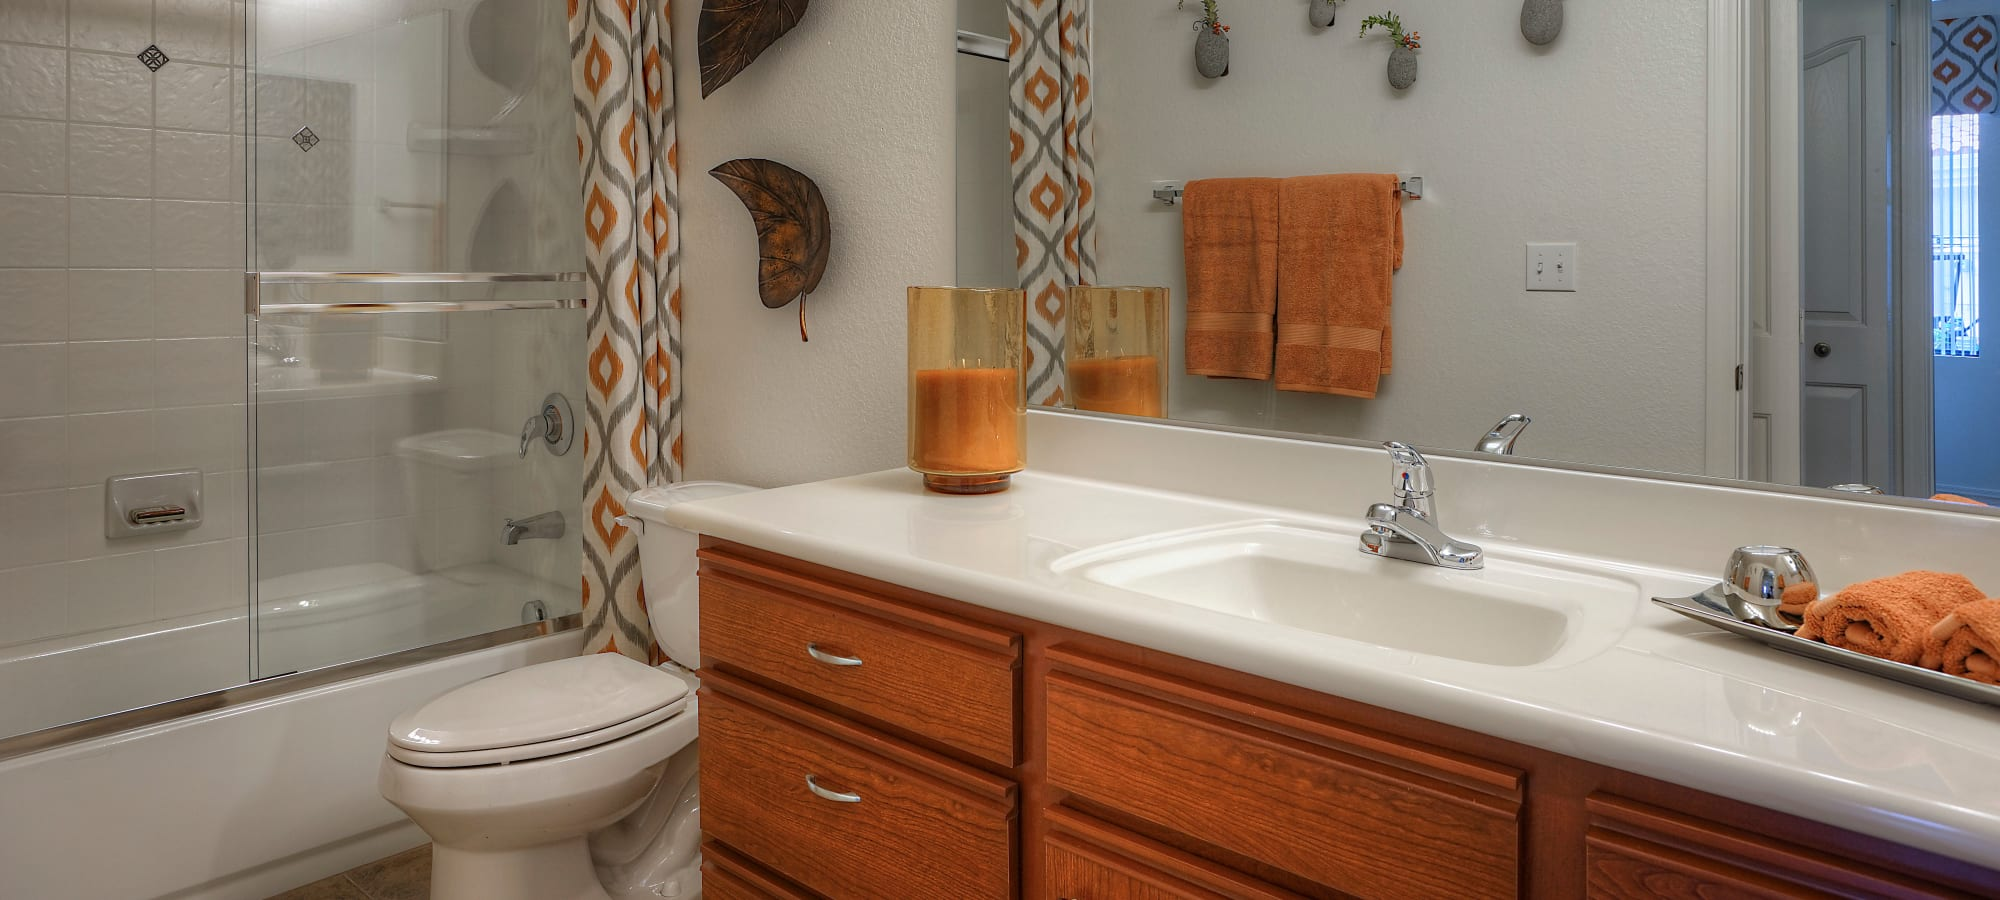 Bathroom with contemporary decor in model home at San Palacio in Chandler, Arizona